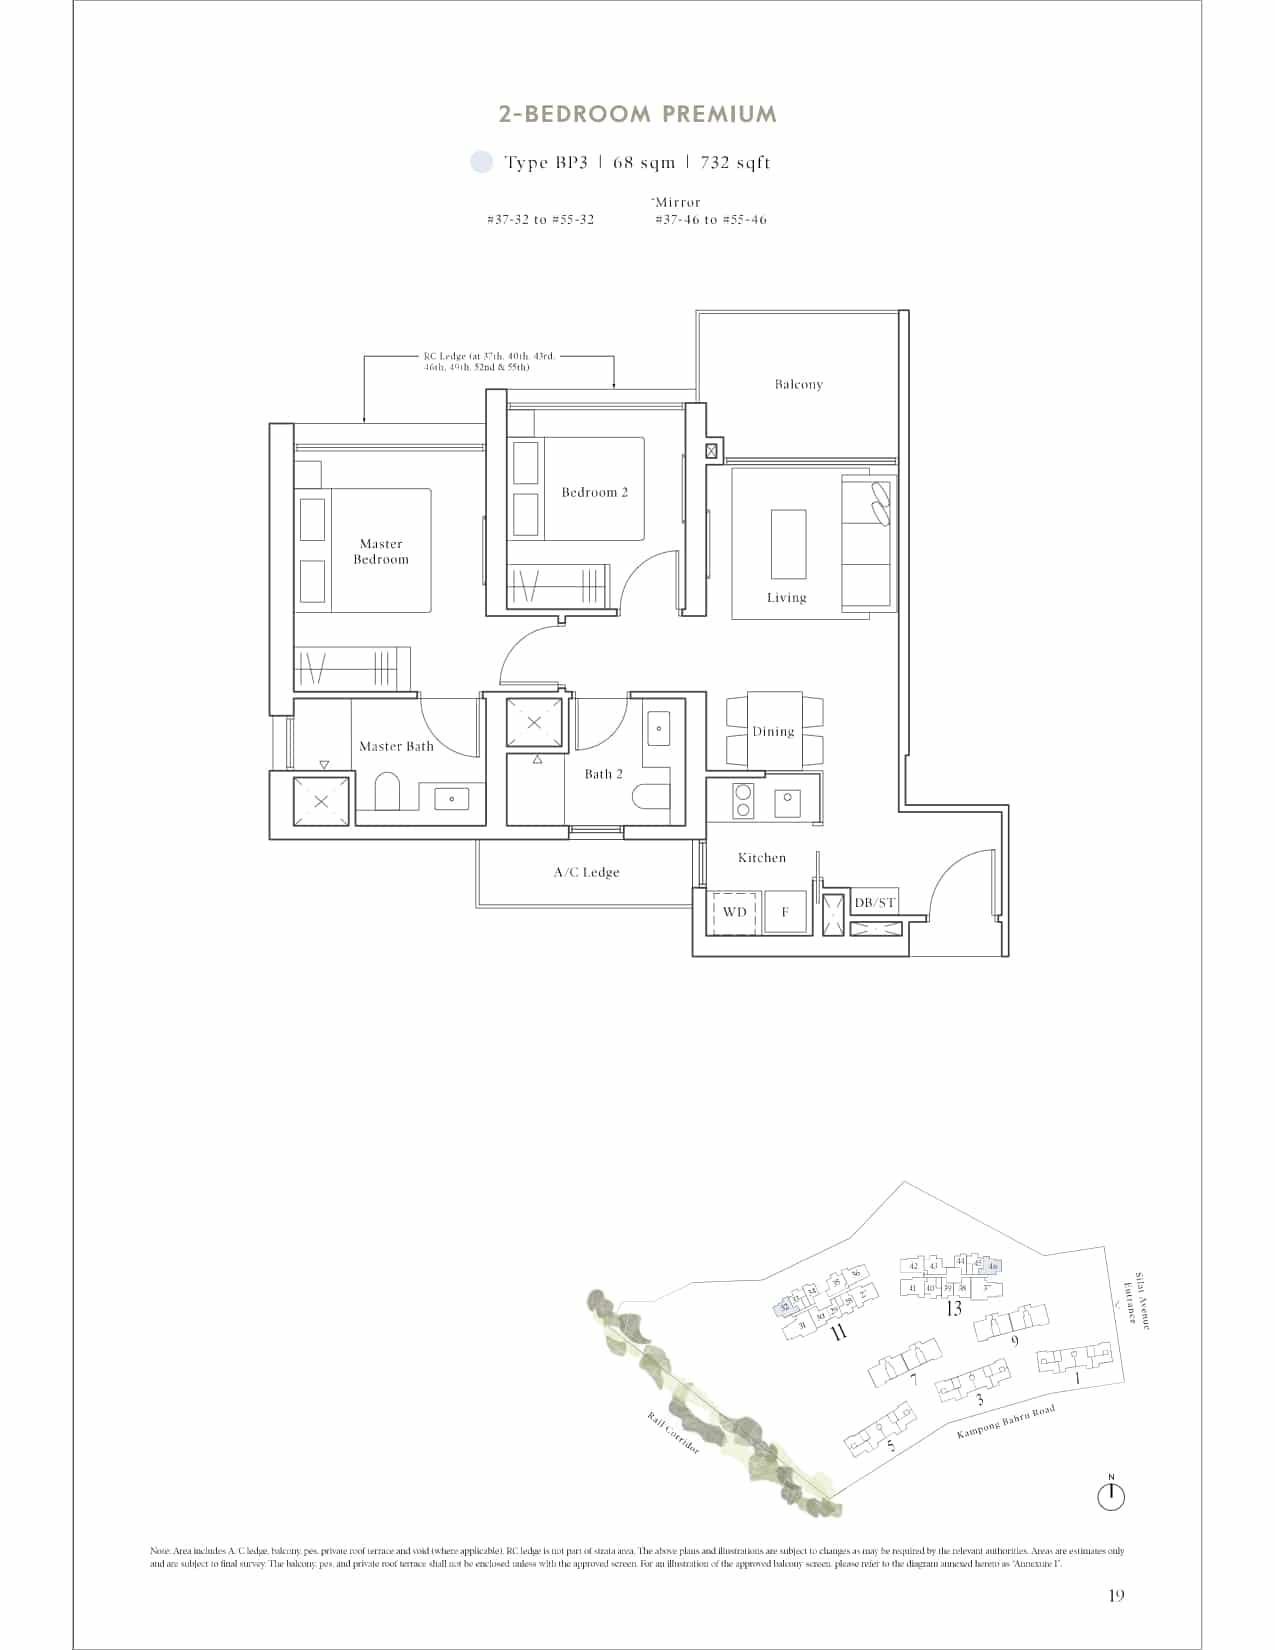 Avenue South Residence Floor Plan